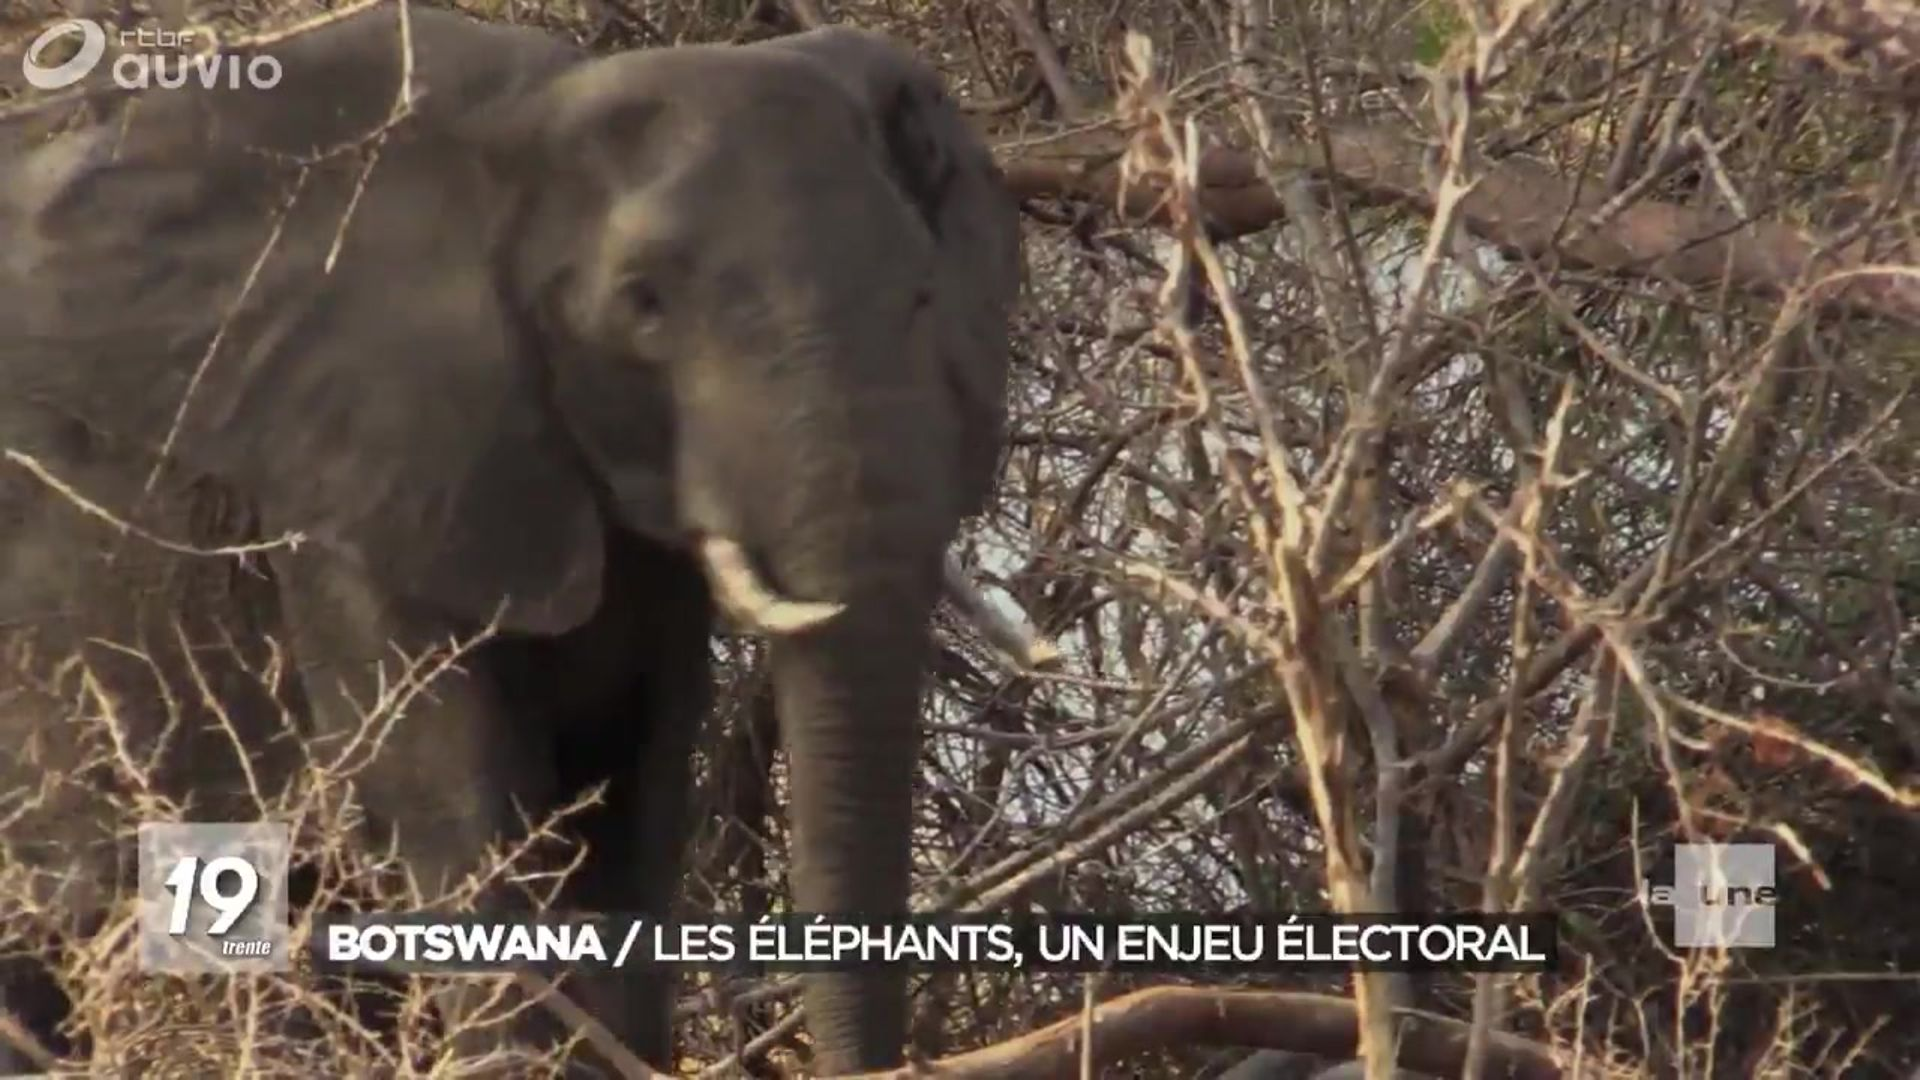 Elephant En Inde Signification https://www.rtbf.be/auvio/detail_contacts-express?id=2556907